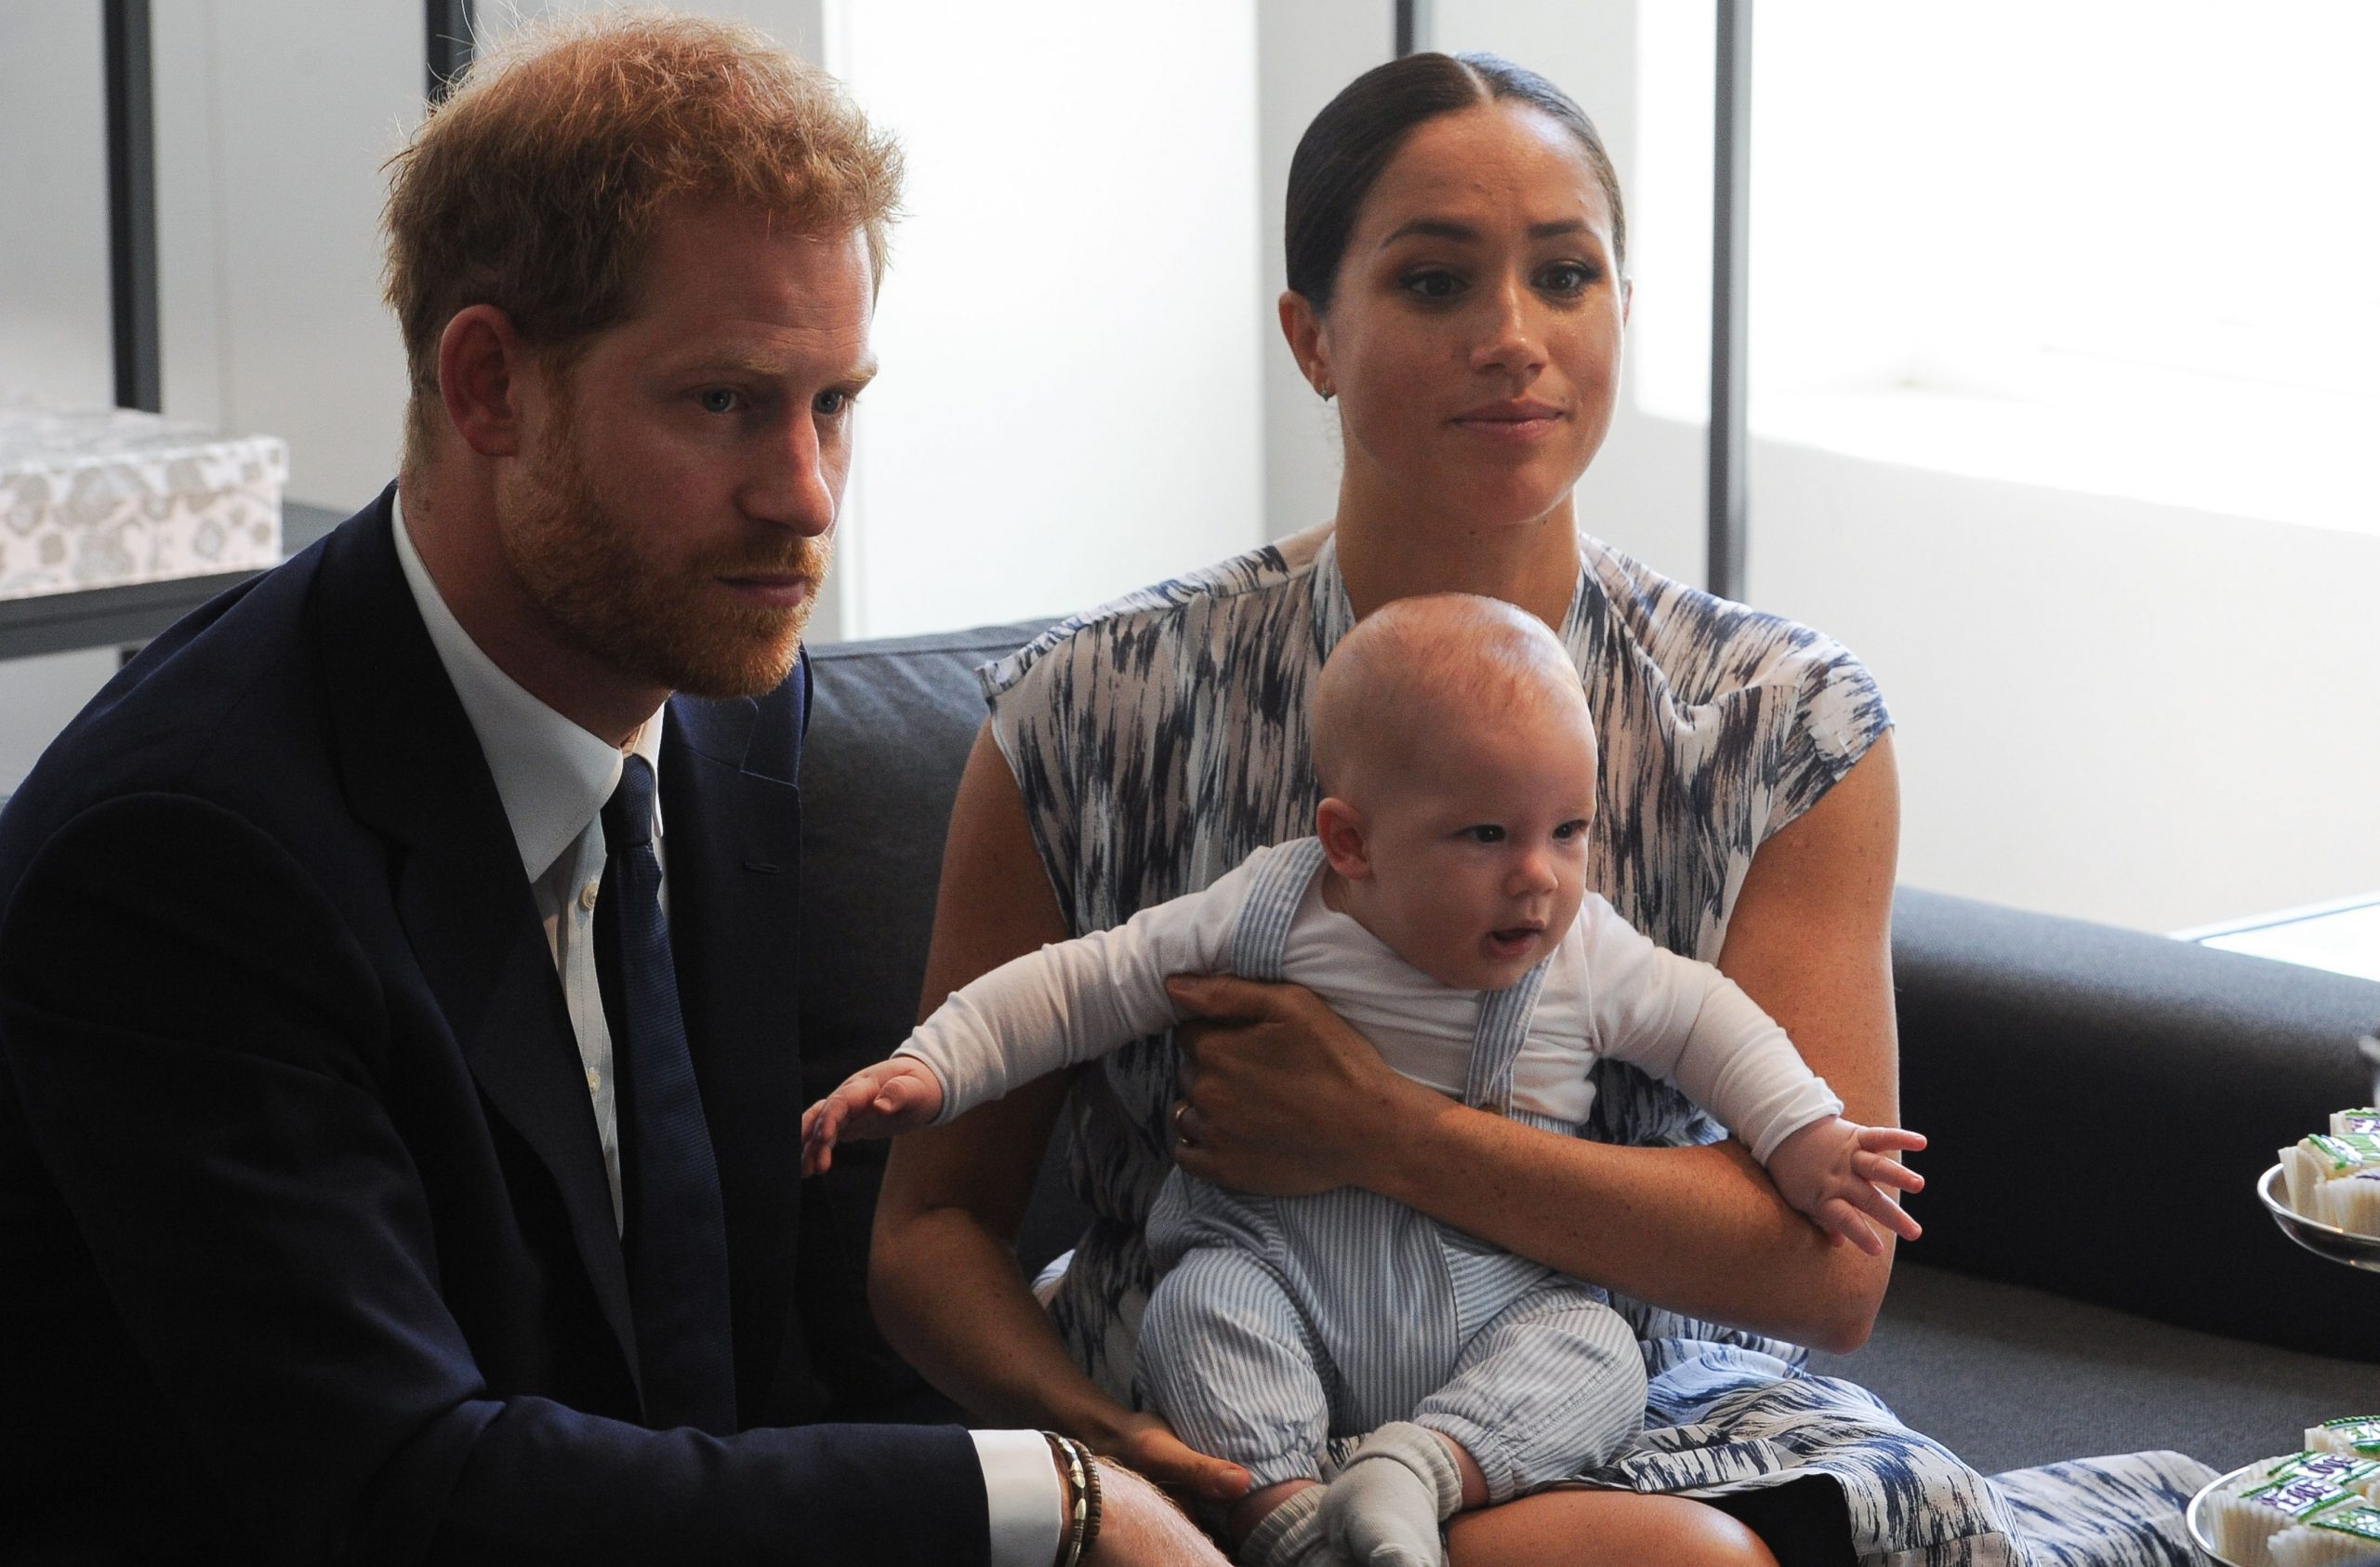 Is this the real reason behind Prince Harry's decision to step away from royal family?